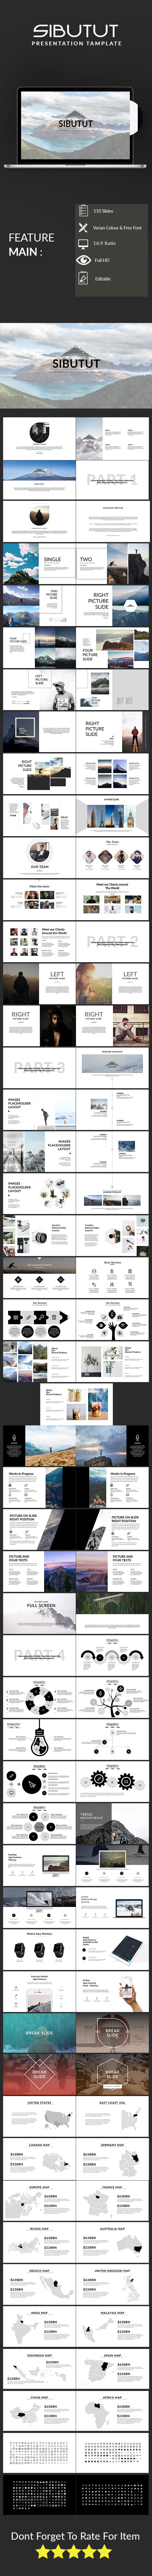 Sibutut Multipurpose Template - PowerPoint Templates Presentation Templates